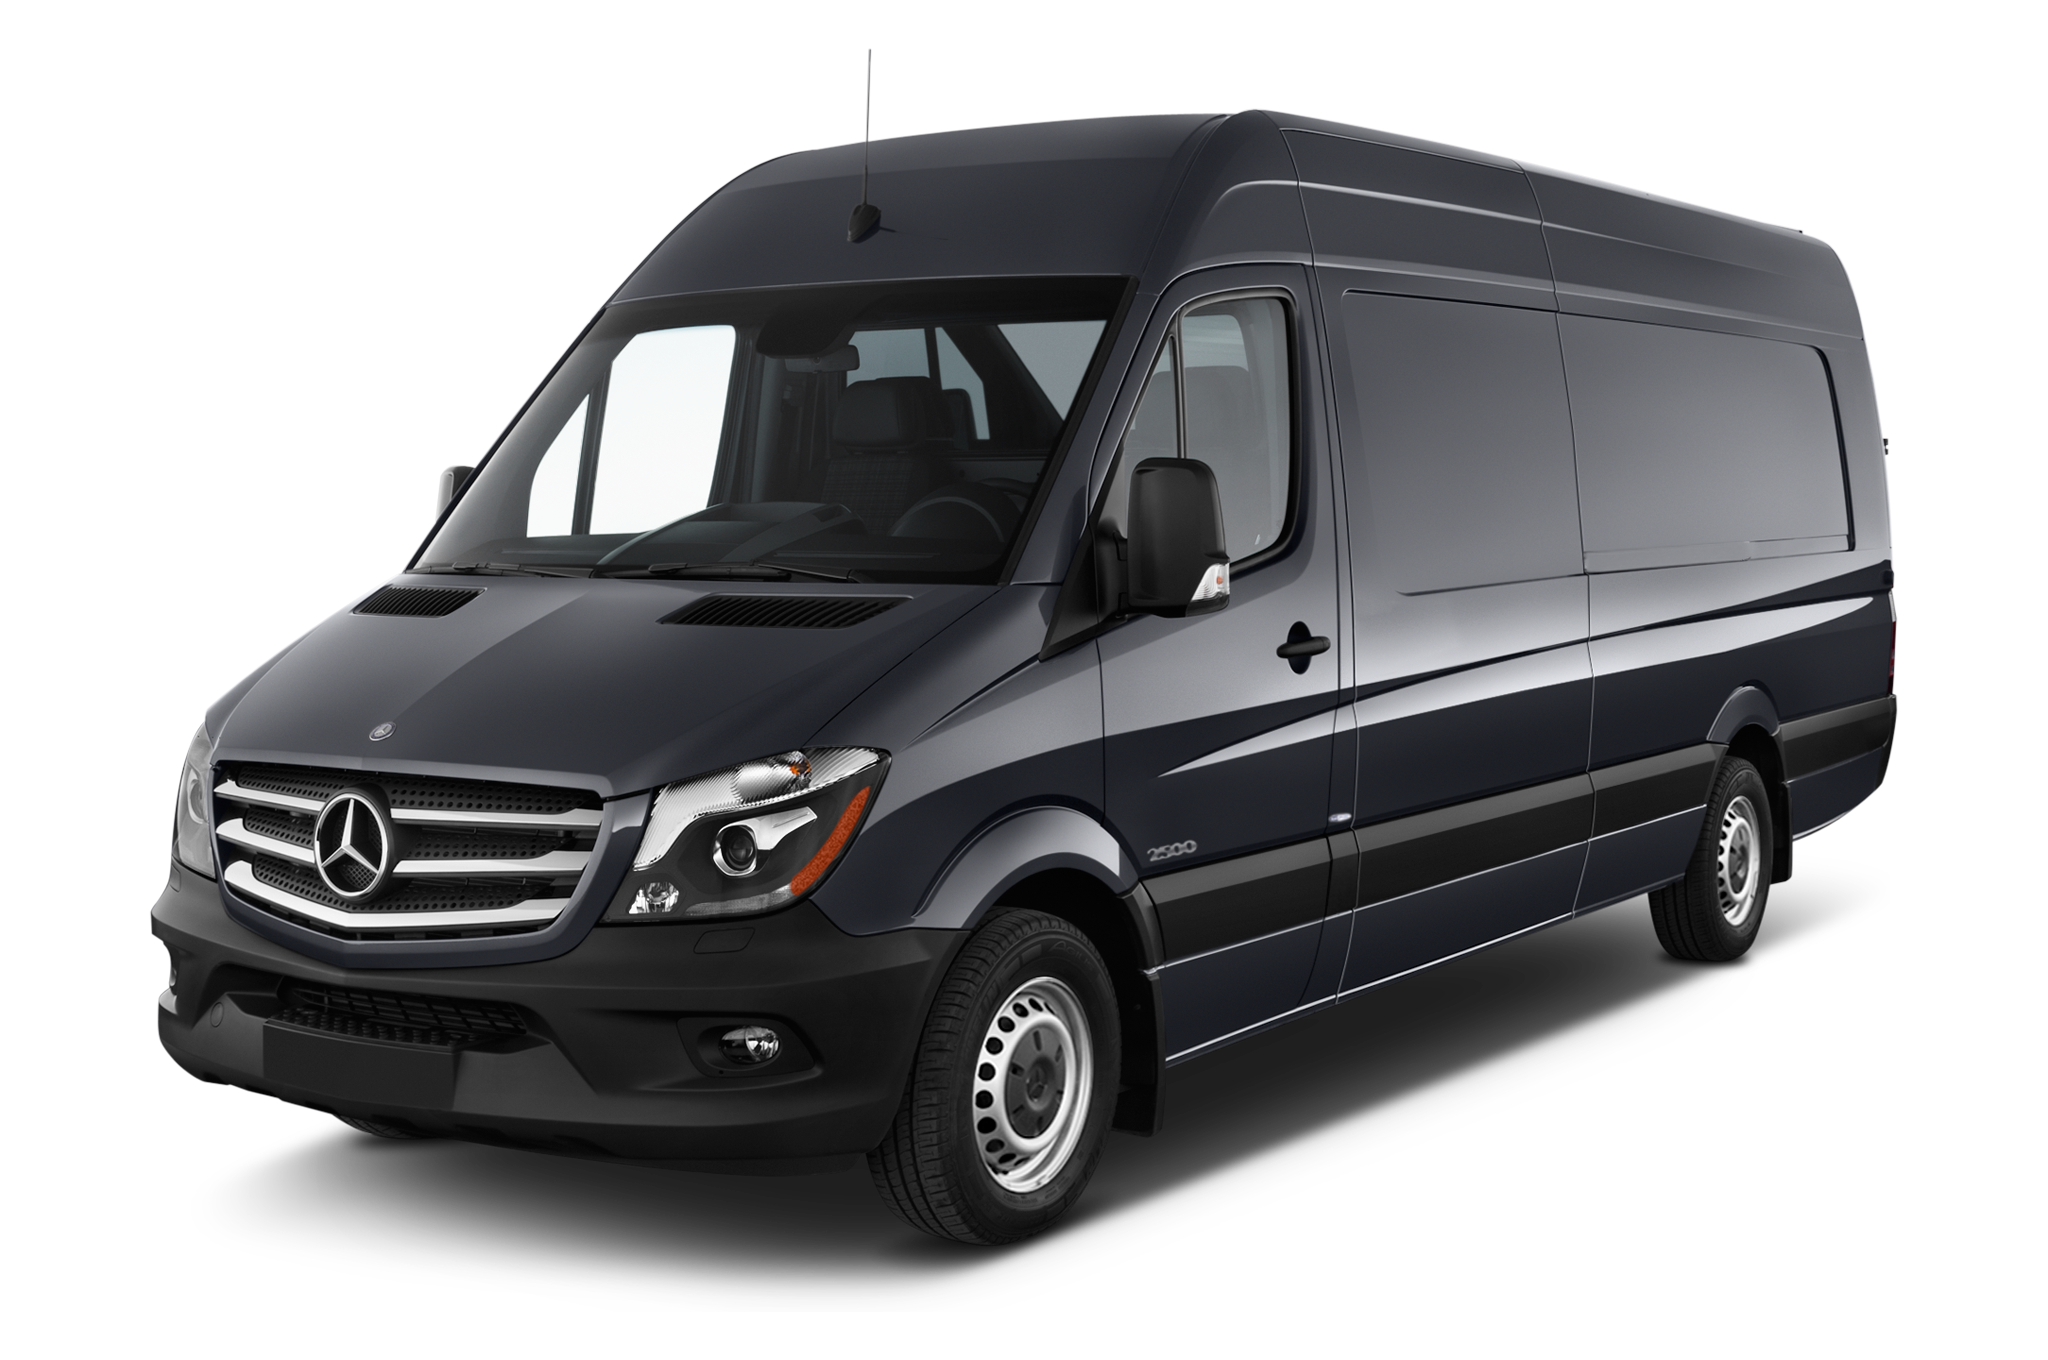 2014 mercedes benz sprinter cargo van pricing msn autos for Mercedes benz sprinter price philippines